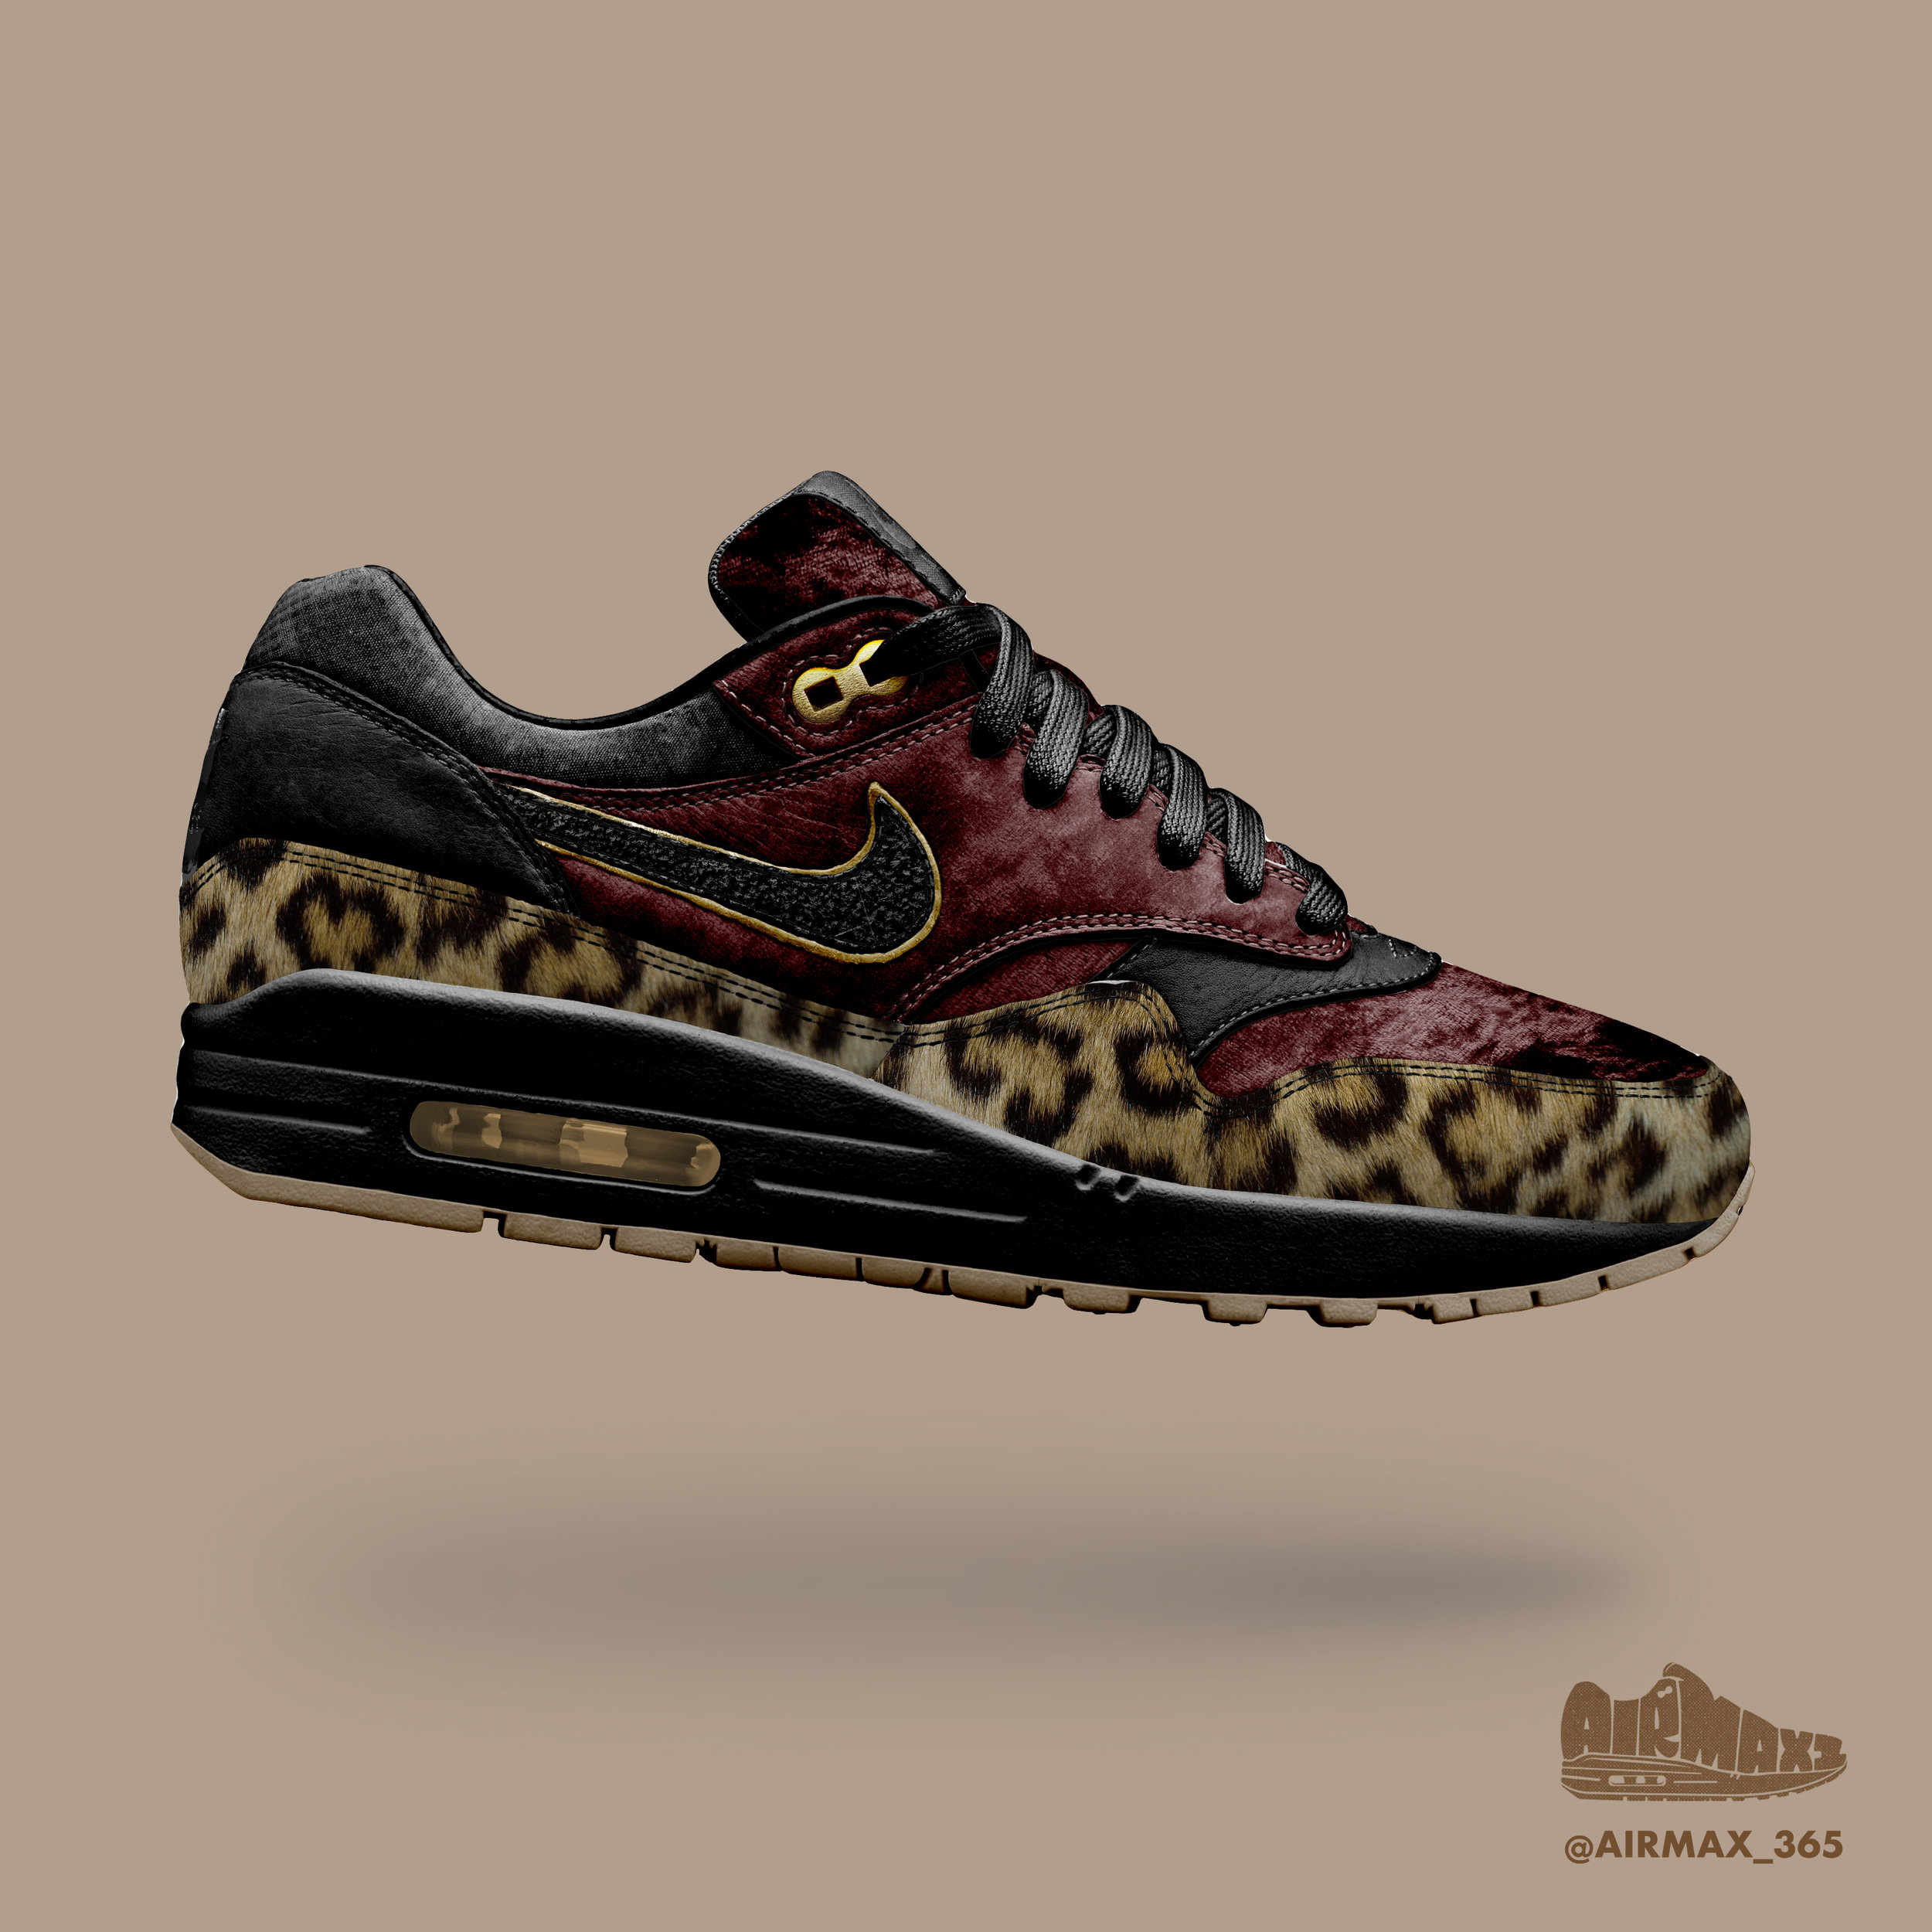 Day 314: Air Max 1 Primacy